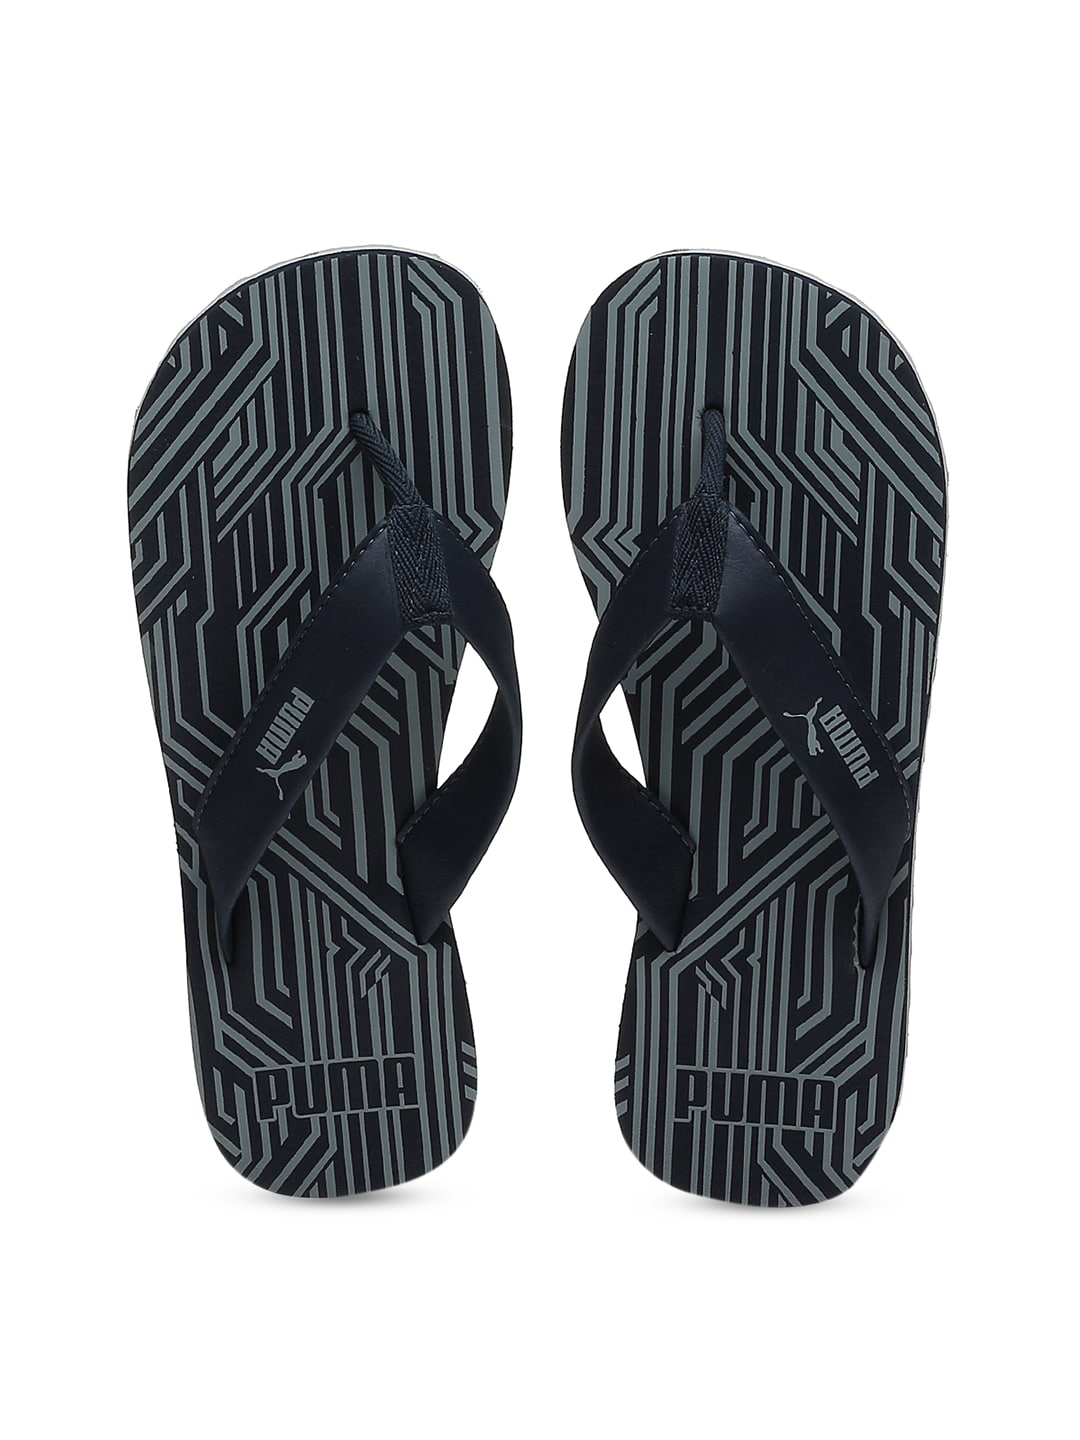 Puma Flip Flops Bags Handbags - Buy Puma Flip Flops Bags Handbags online in  India 9e1a00067